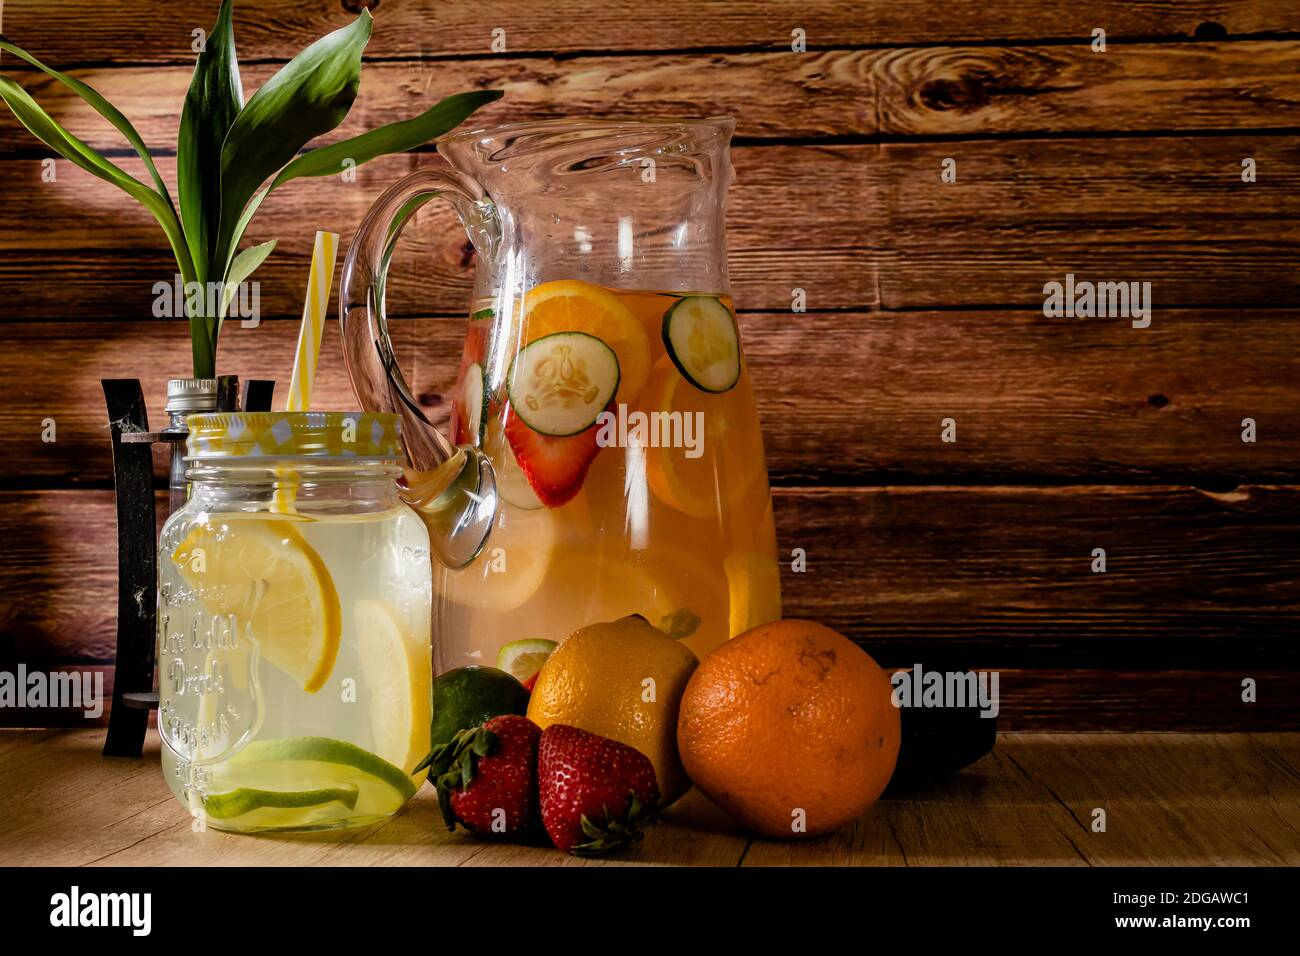 Large Glass Pitcher With Citrus Flavored Water And Homemade Lemonade Glass Or Jar With Drink Lid And Straw Freshness Health And Non Alcoholic Stock Photo Alamy